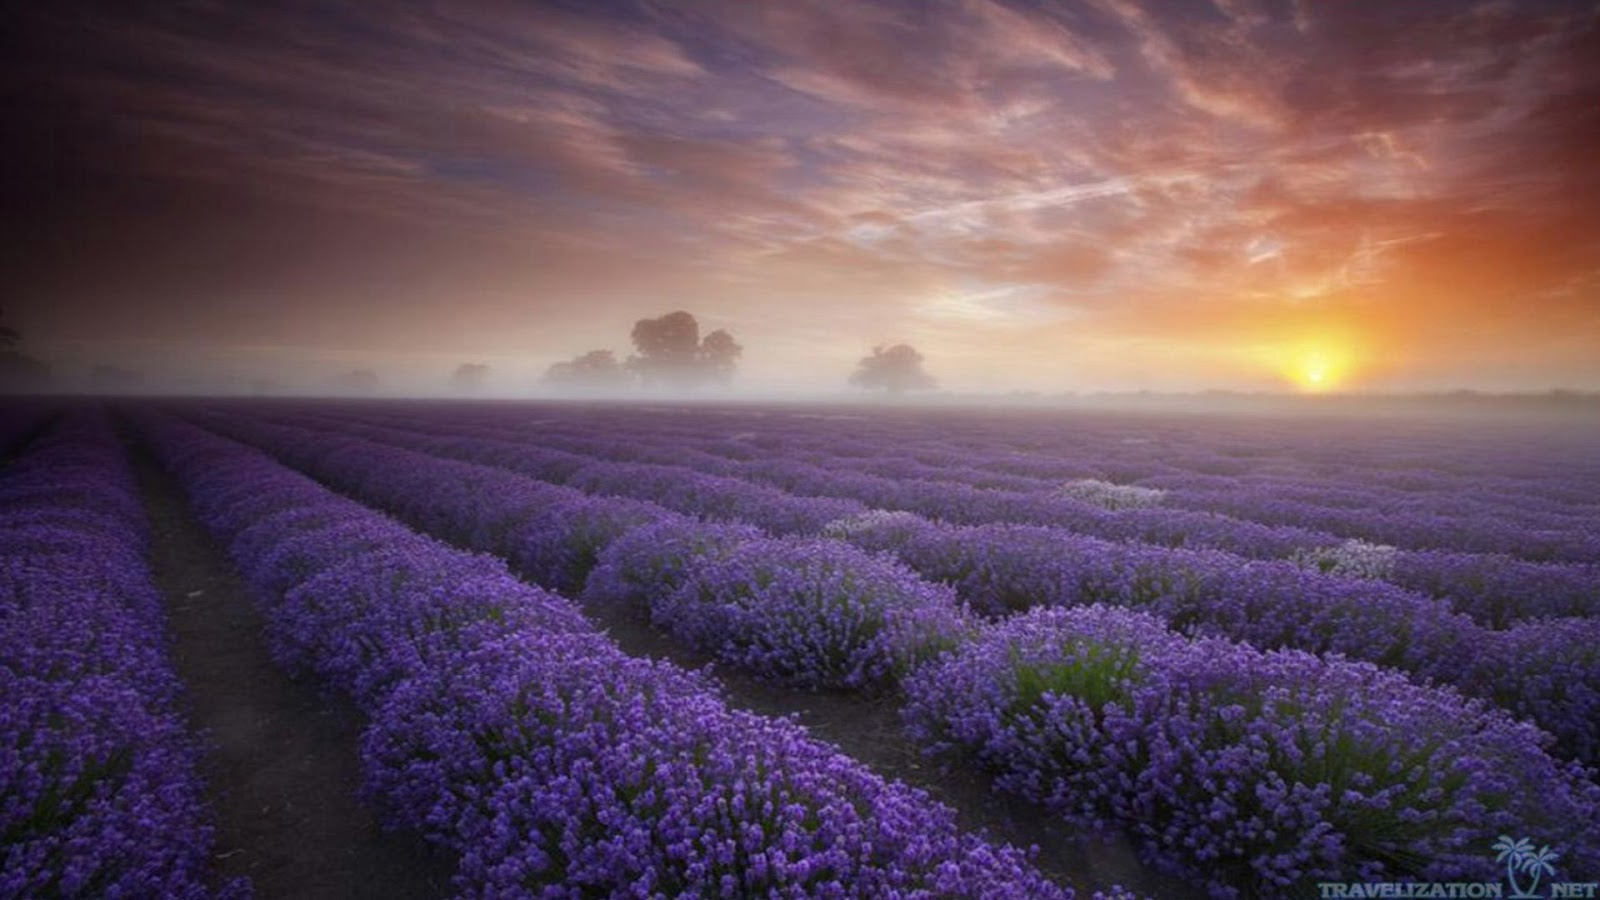 Lavender Field Wallpapers 1600x900